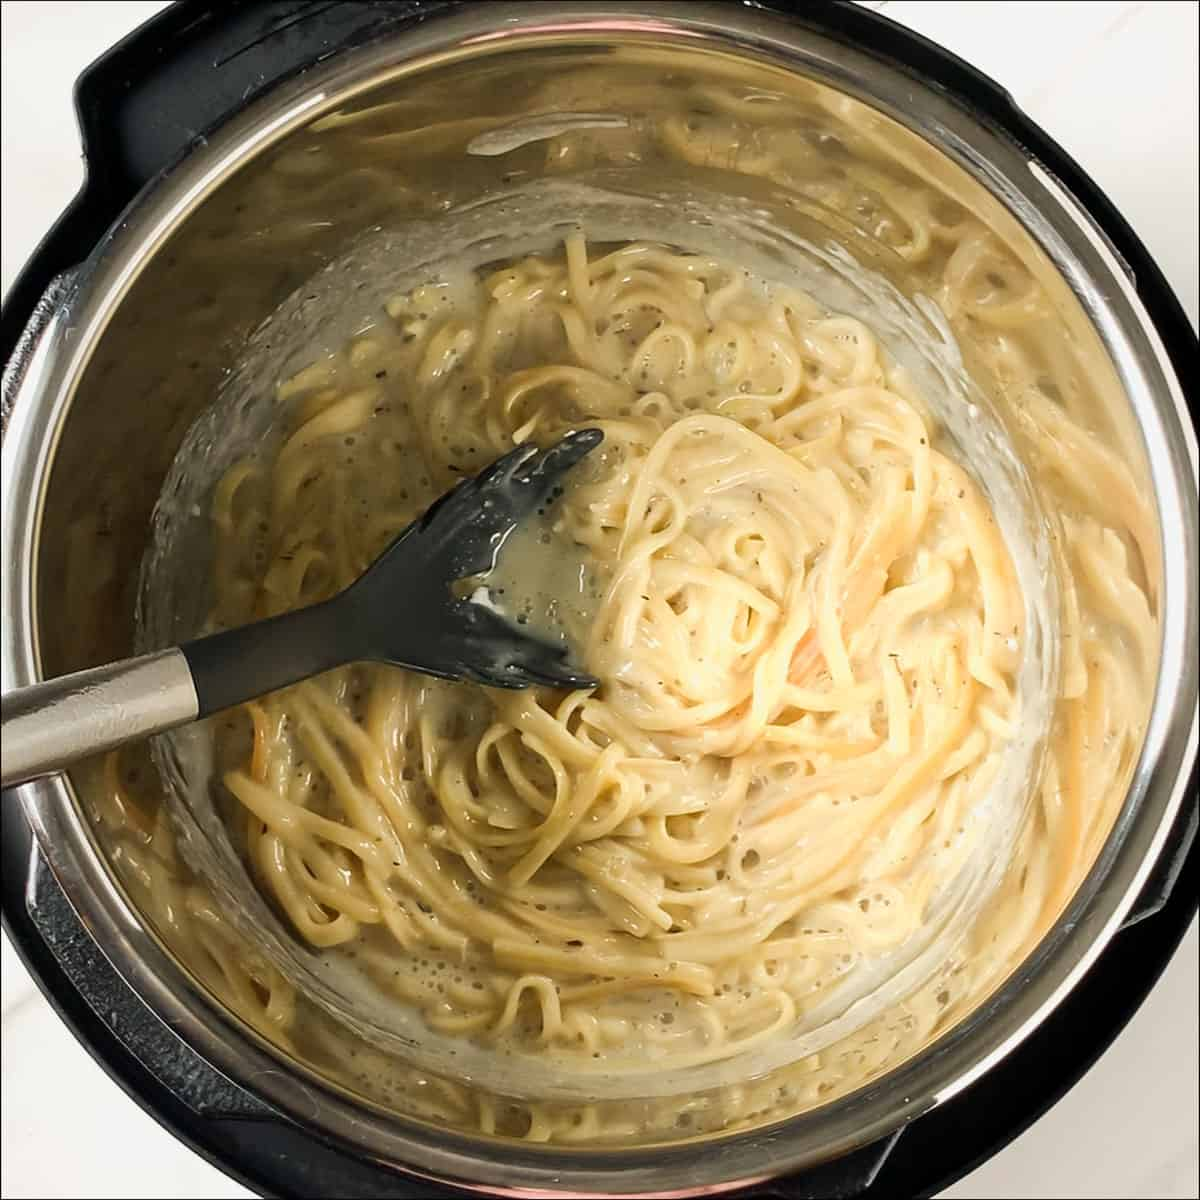 cream cheese mixed into alfredo sauce in instant pot